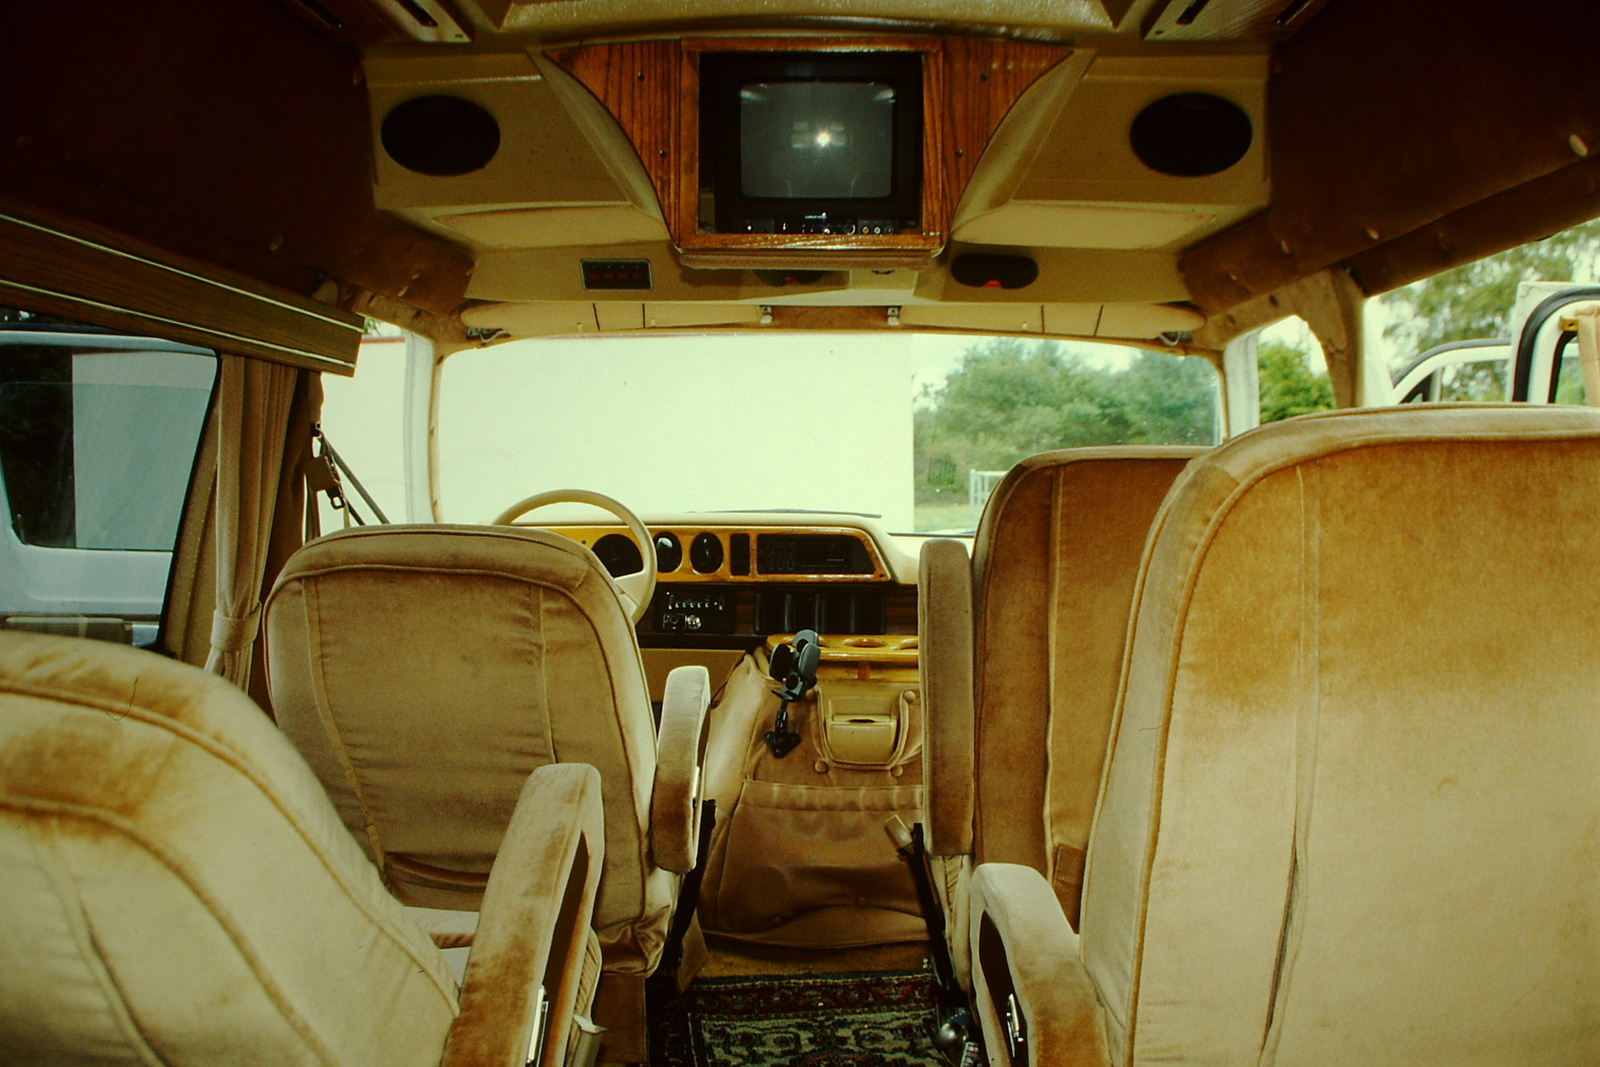 Dodge Ram Van Pic on 1989 Dodge Daytona Interior